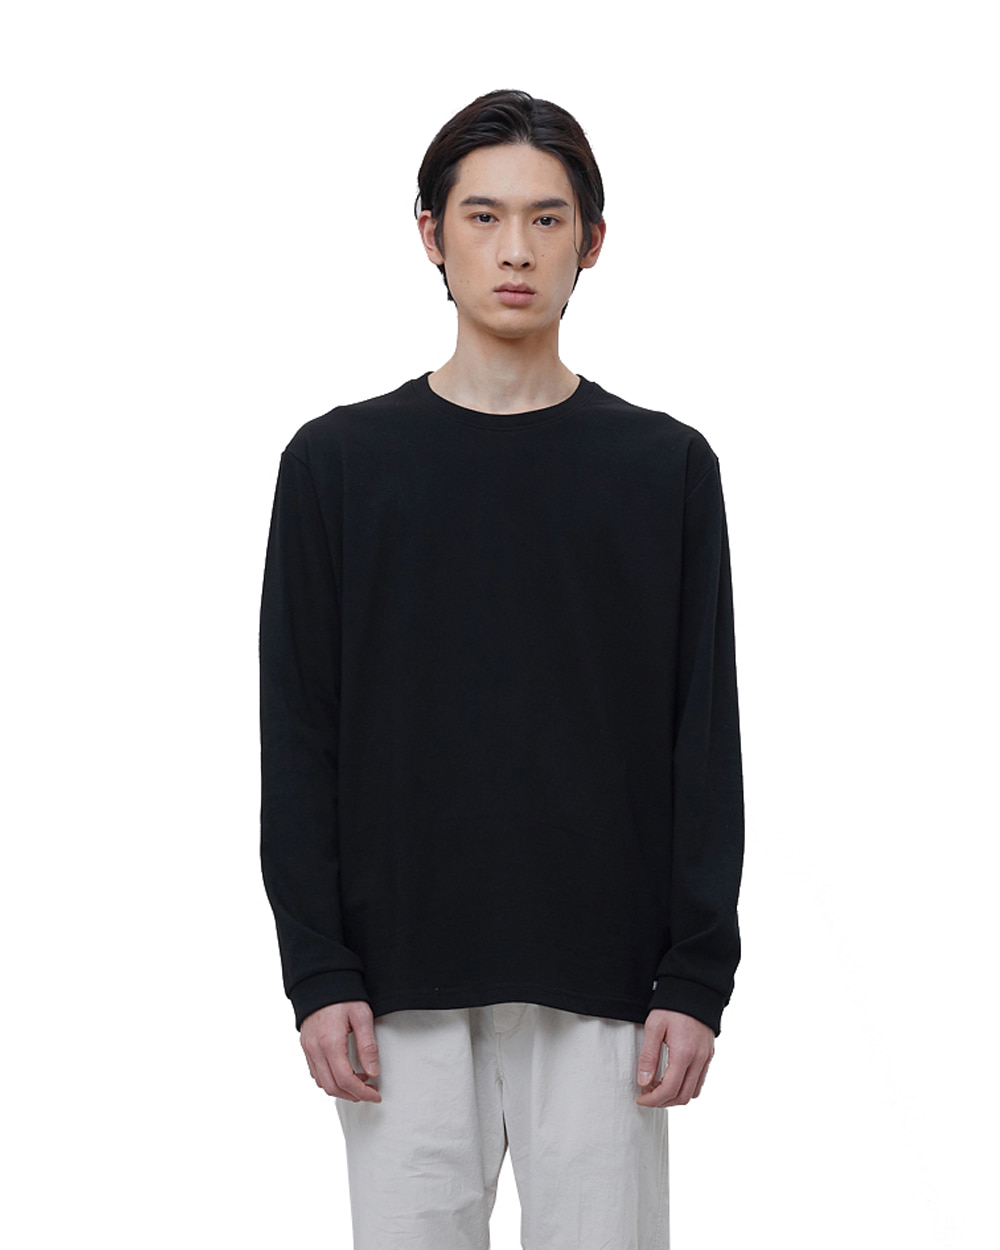 에이카화이트 FINEST COTTON LONG SLEEVE TEE (Black)